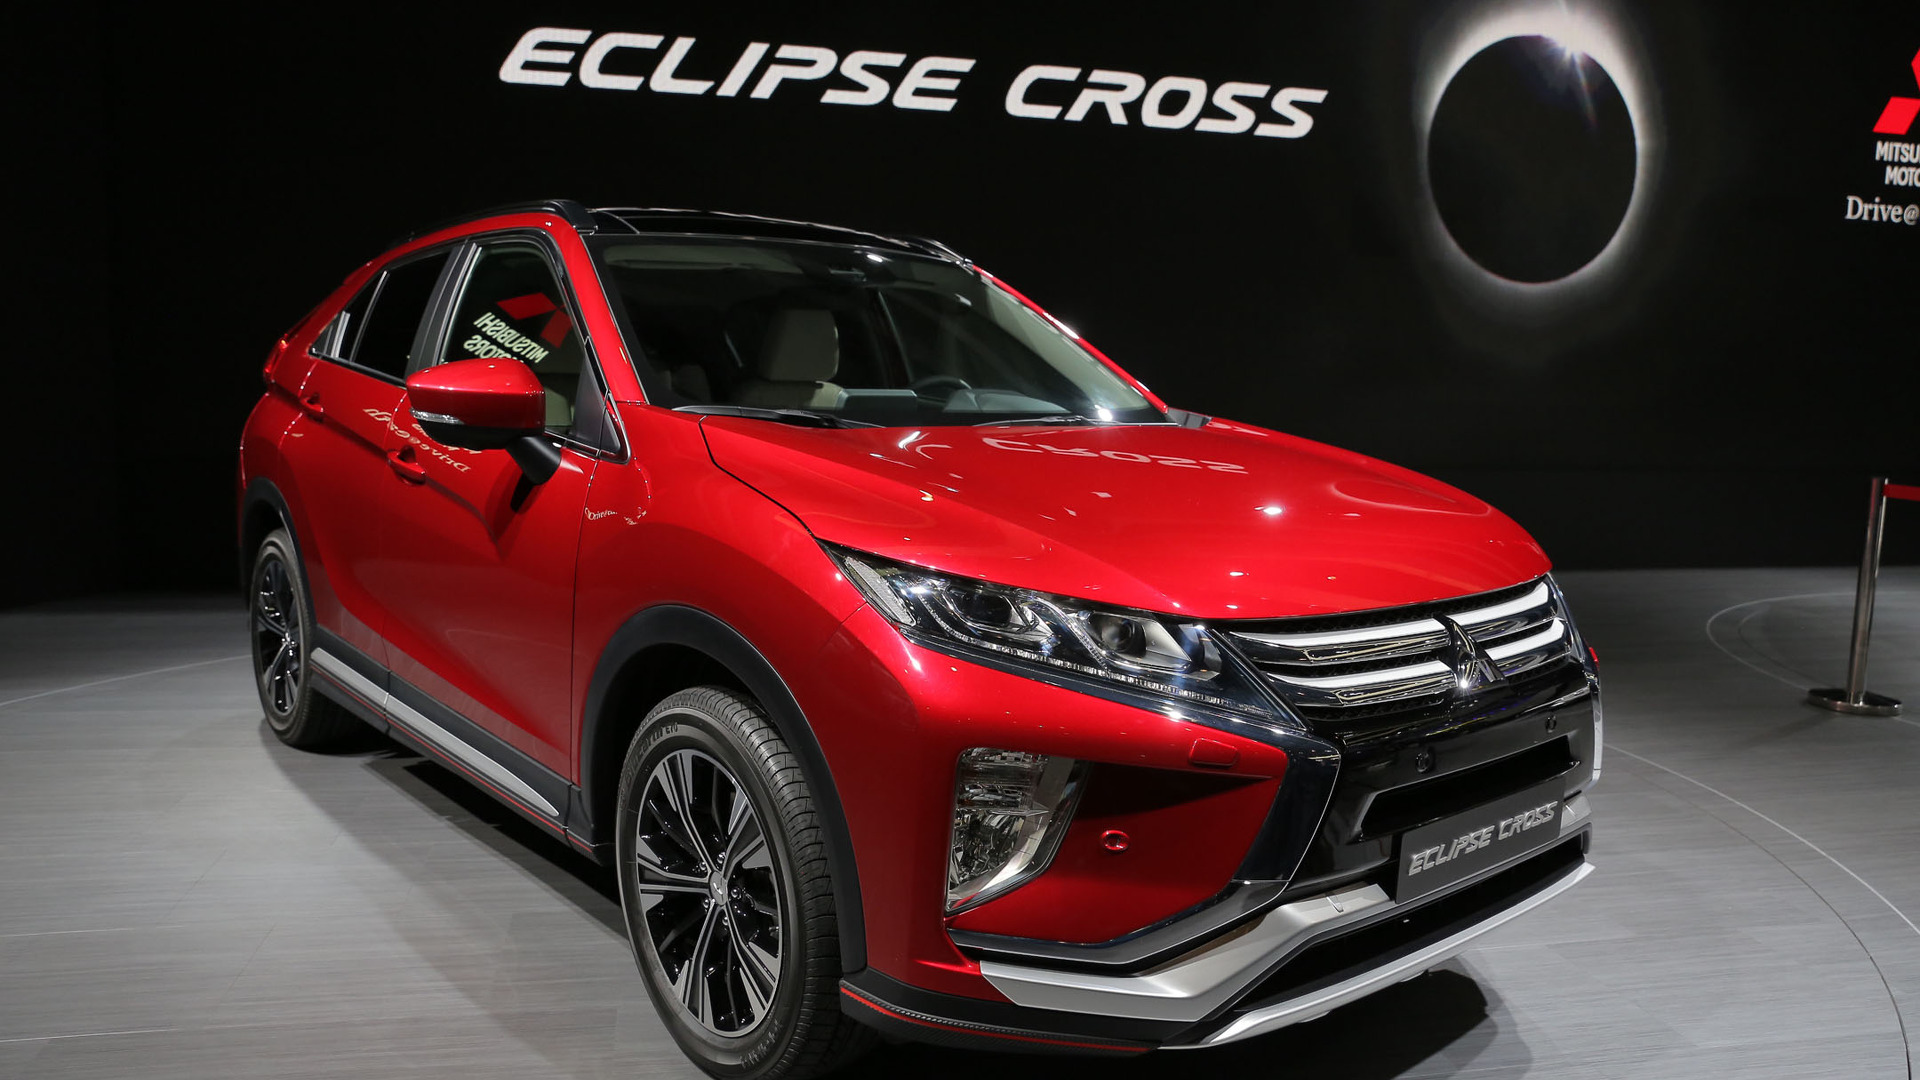 ousado mitsubishi eclipse cross 2018 estreia em genebra veja fotos. Black Bedroom Furniture Sets. Home Design Ideas